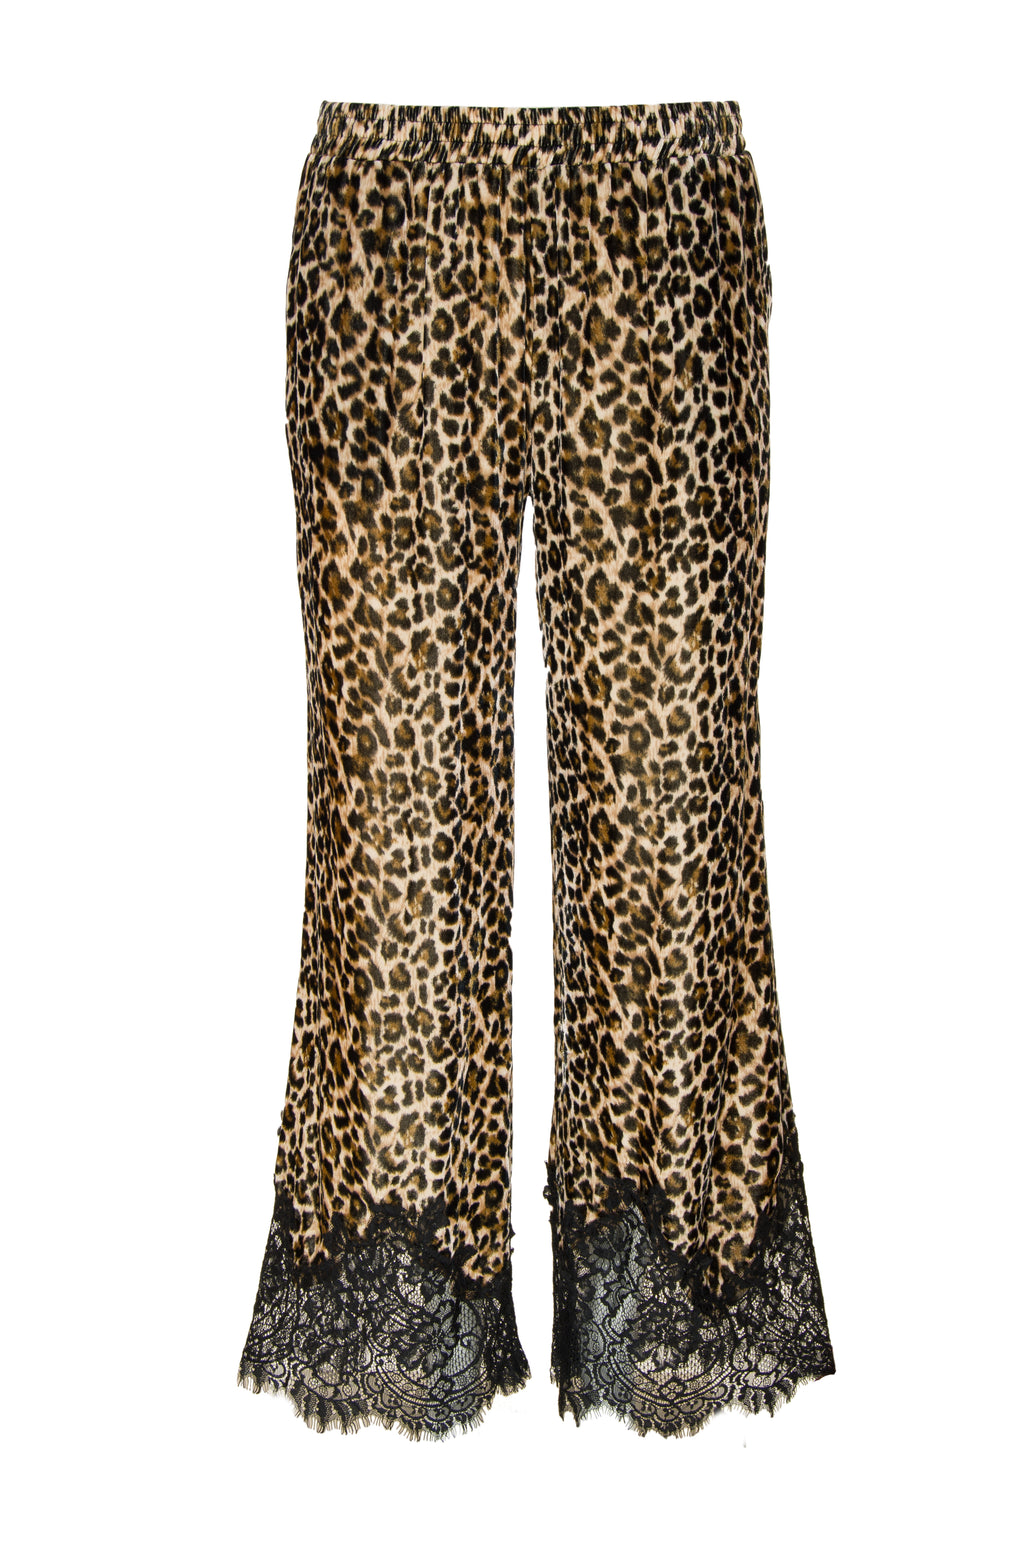 The Animal Print Velvet Ginger Lace Pants in mocca leopard print.